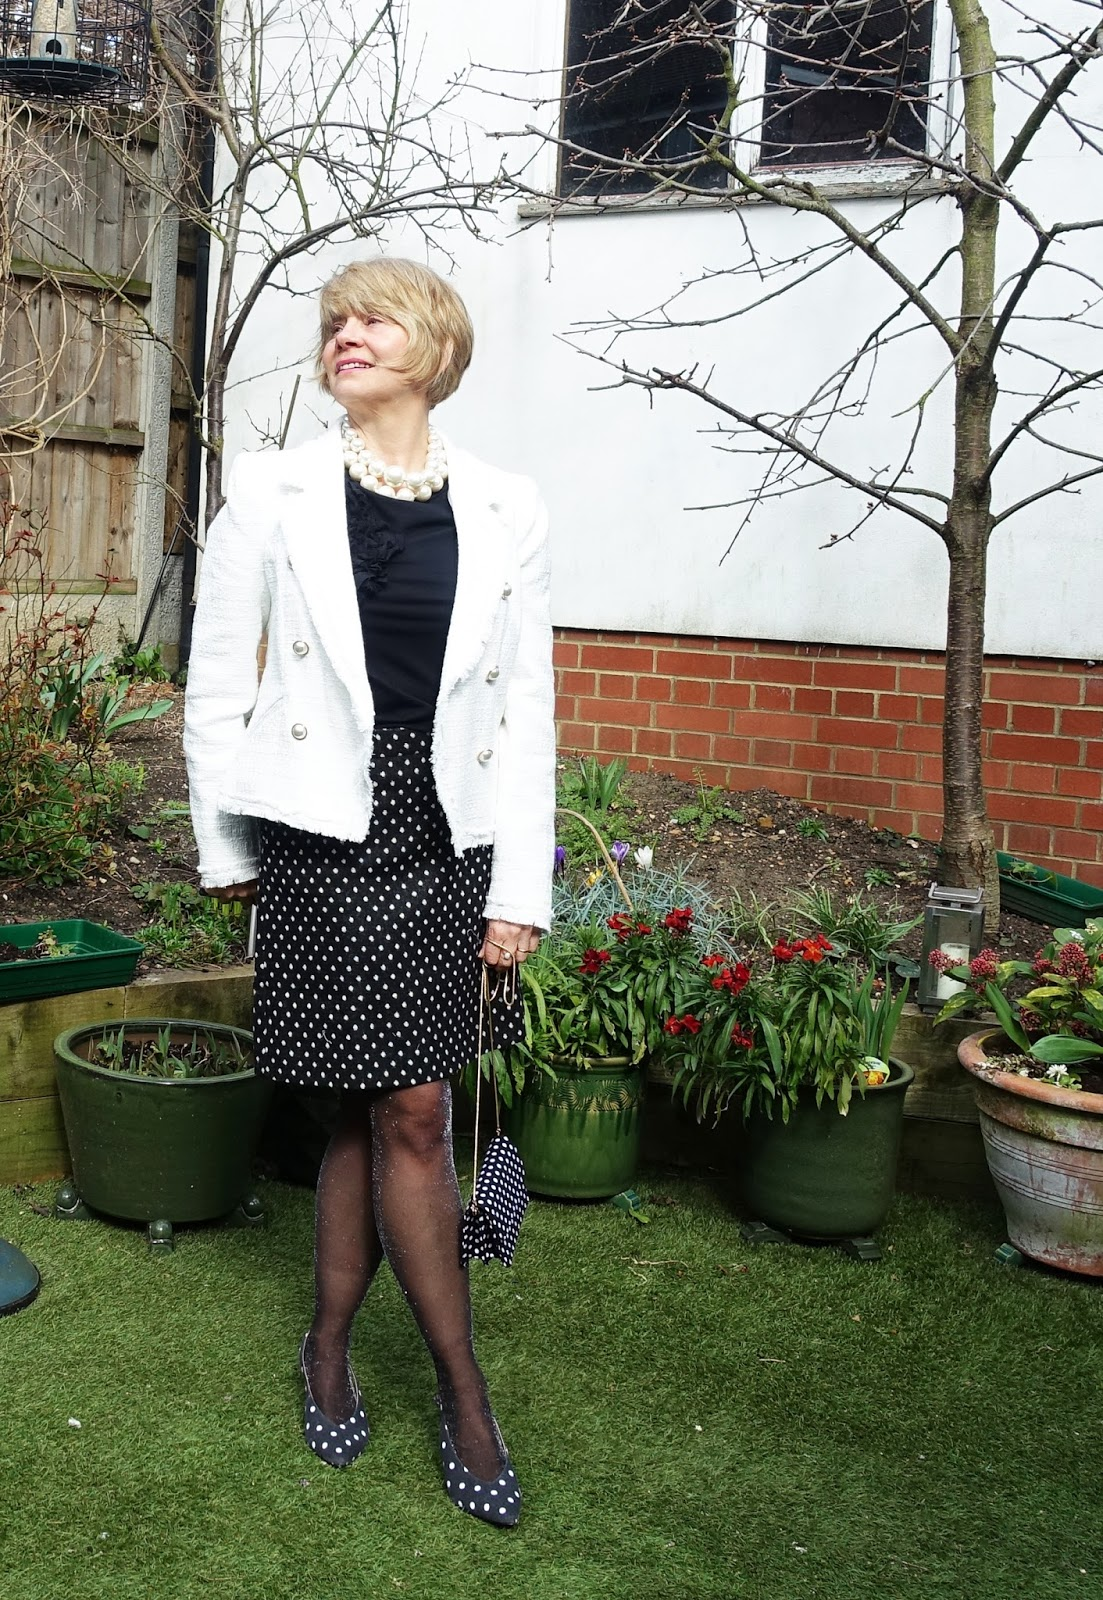 Image showing over 45s blogger Is This Mutton? wearing a white bouclé jacket worn with pearls and polka dots